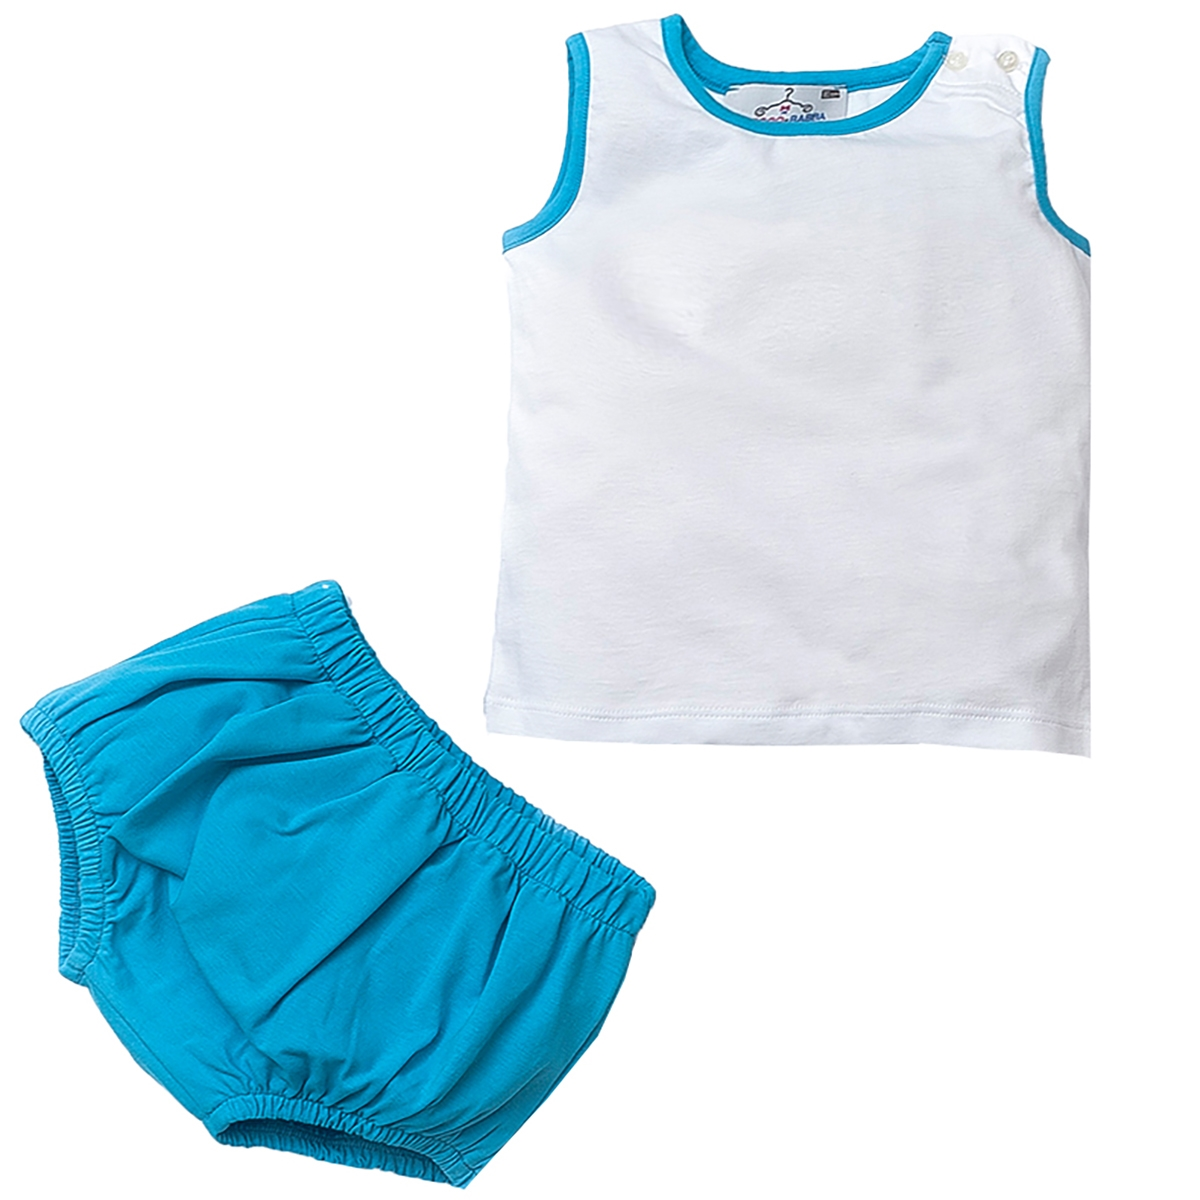 Shecco Babba A Male Baby's Bottom-Hearted Some White Shorts-Turquoise